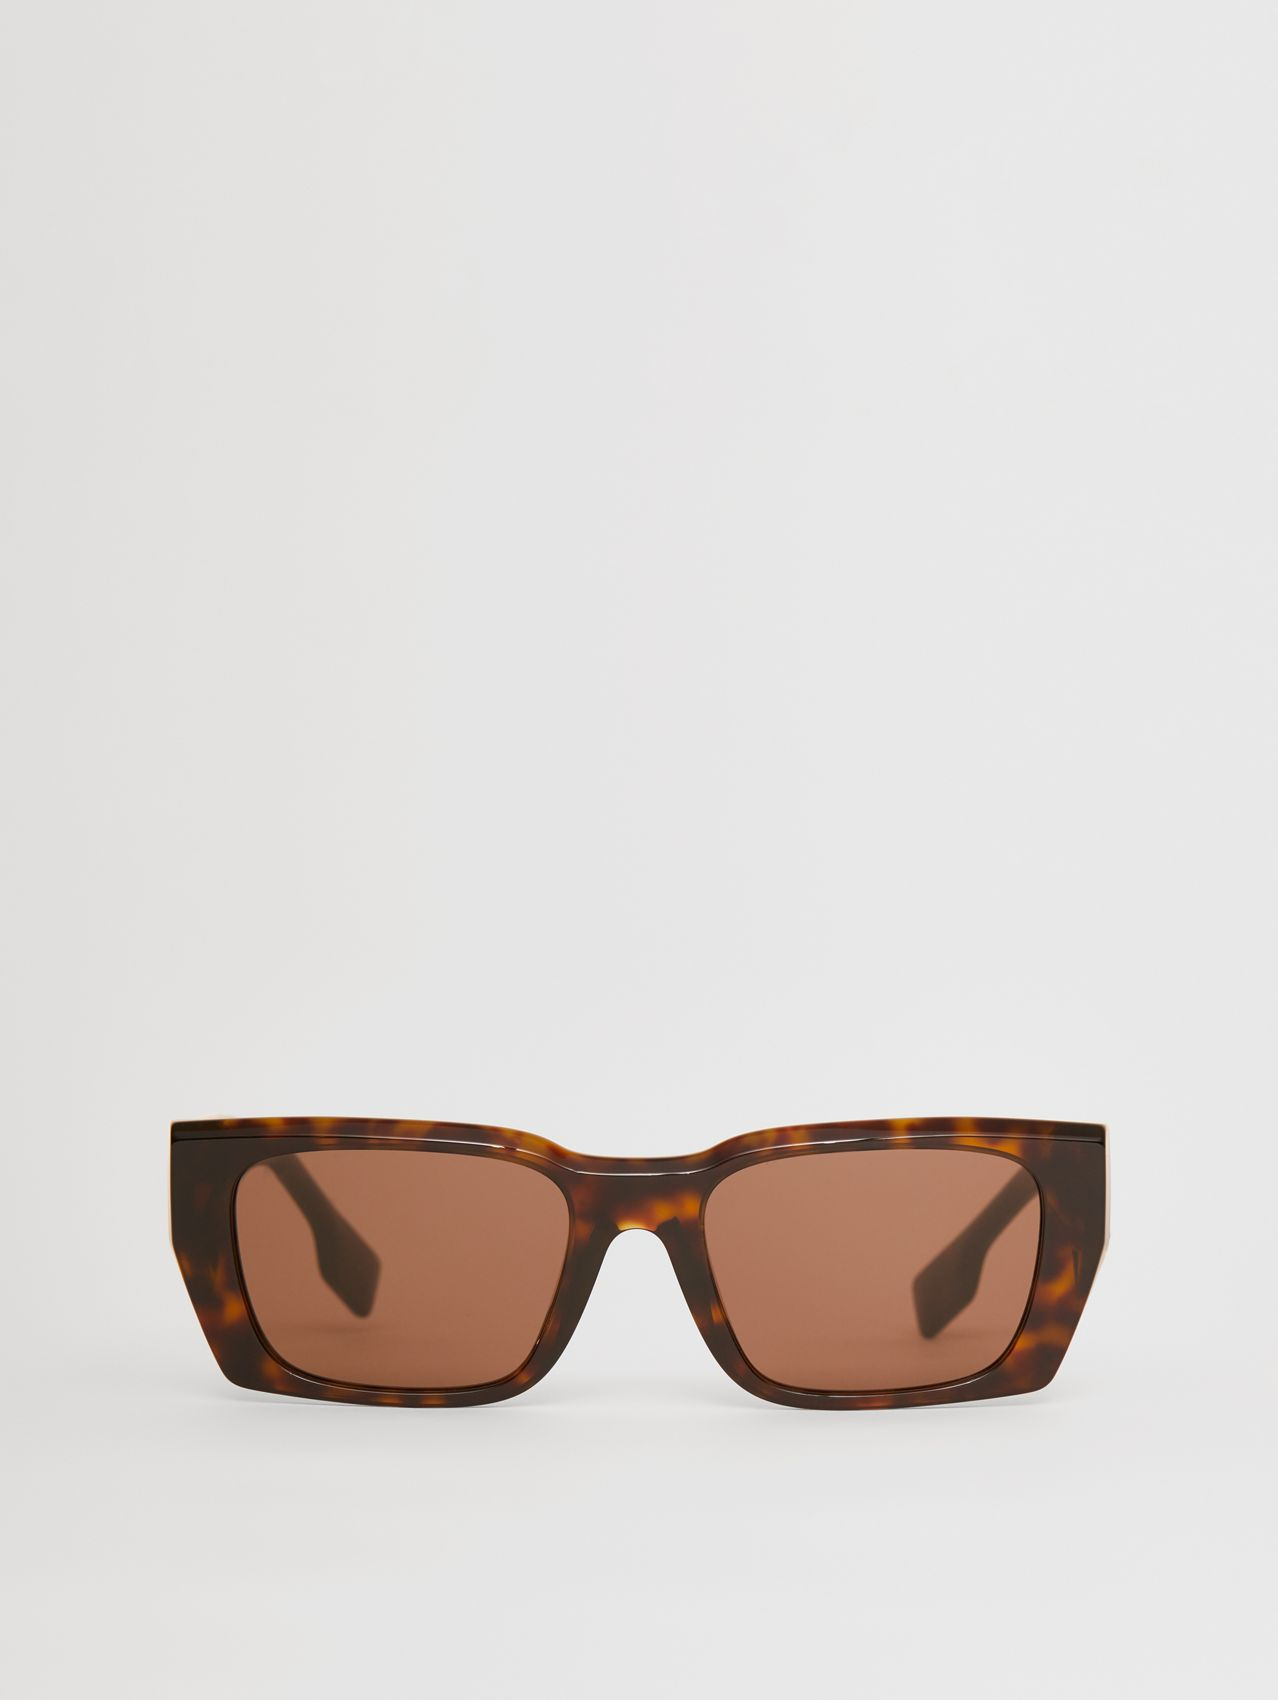 B Motif Bio-acetate Rectangular Frame Sunglasses in Tortoiseshell